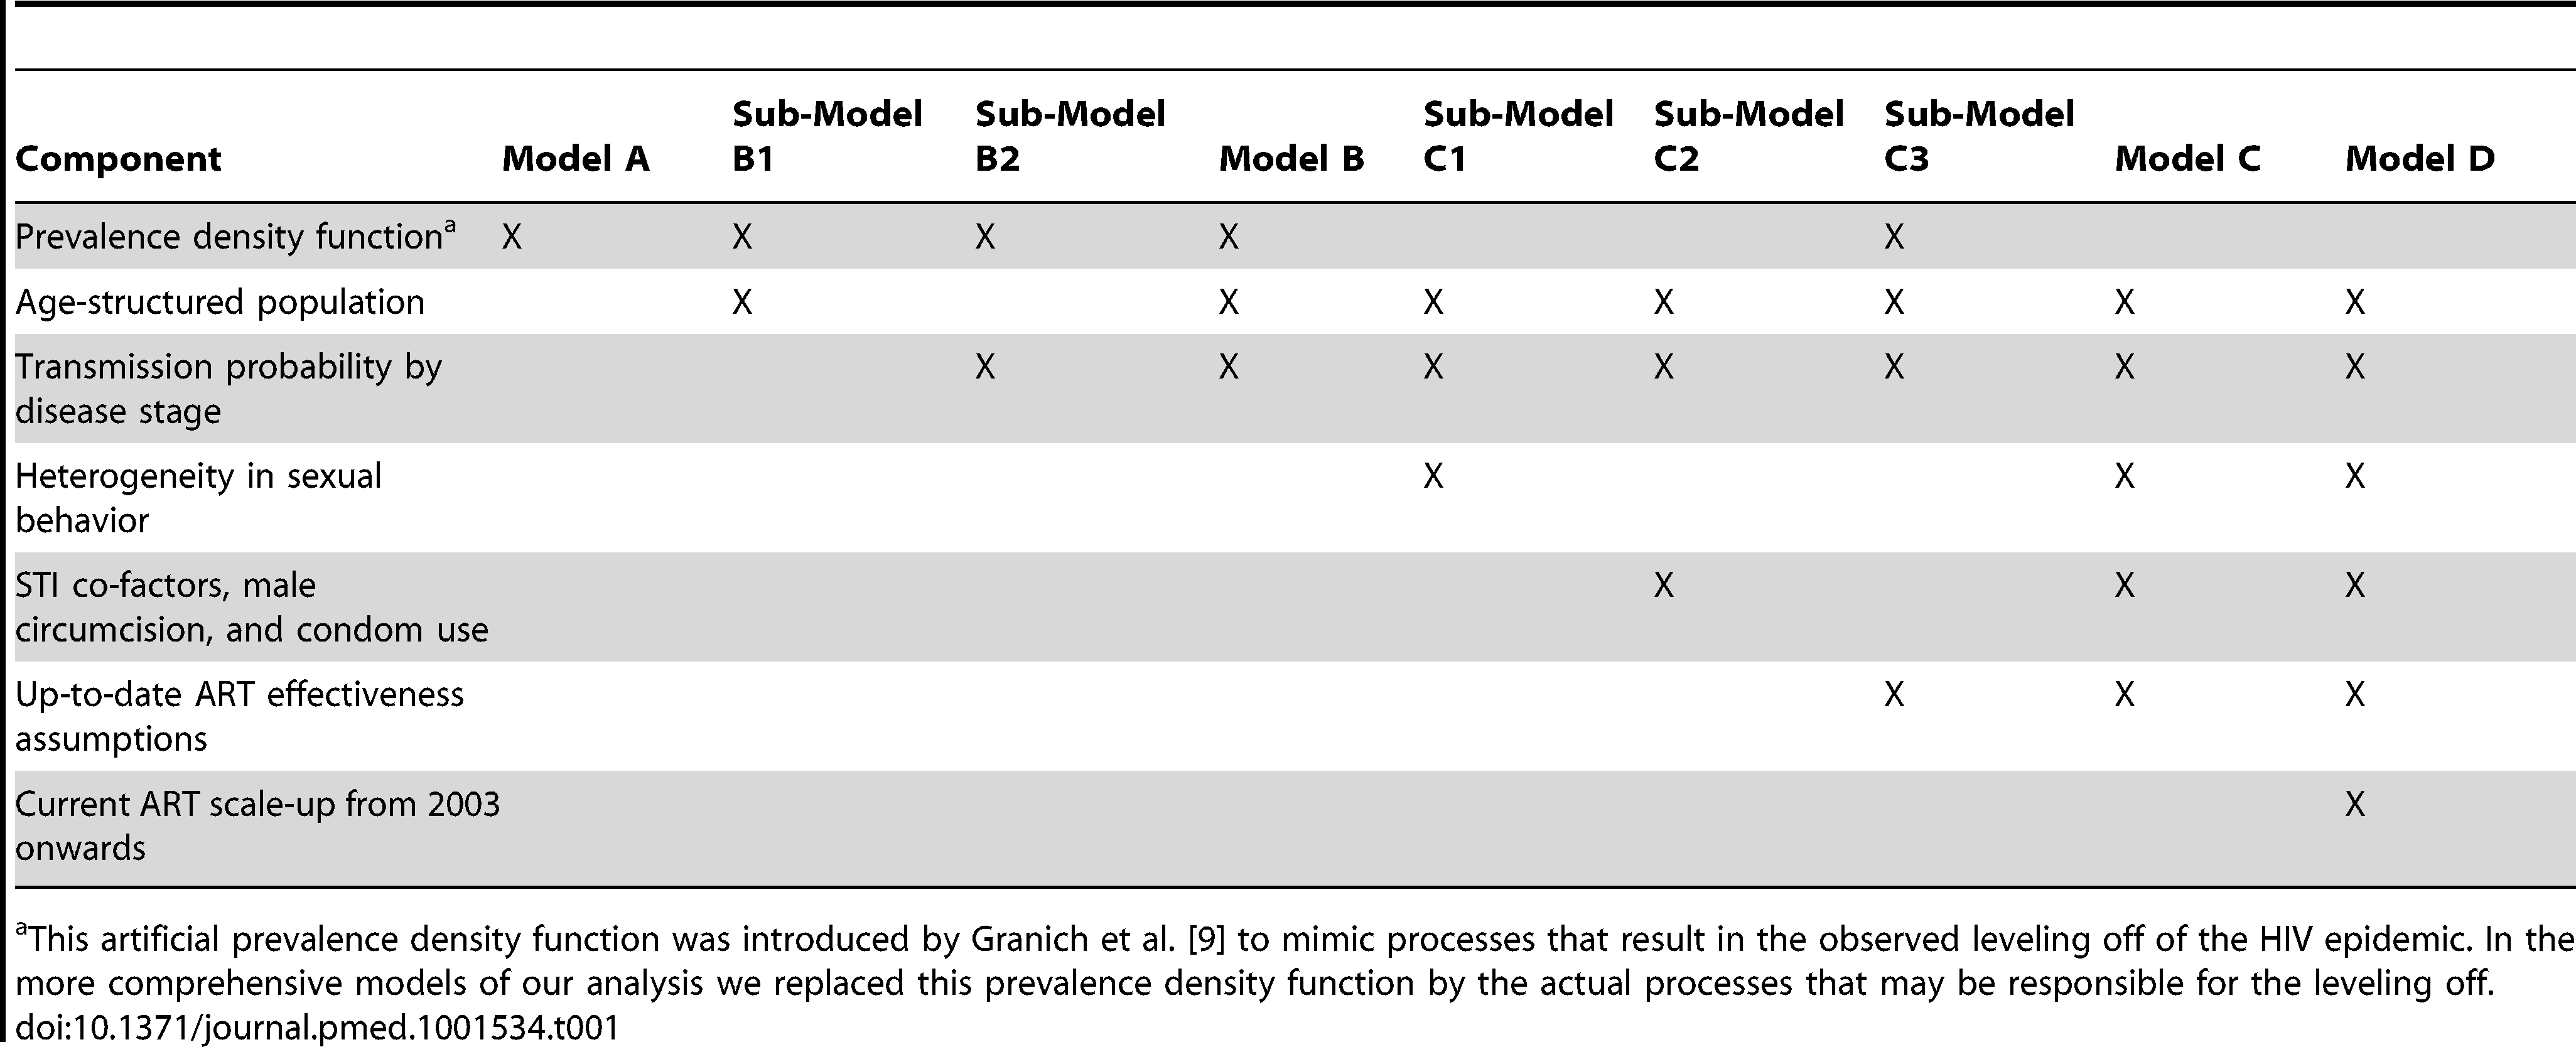 Overview of successive addition of components and structures to each of the nine models.